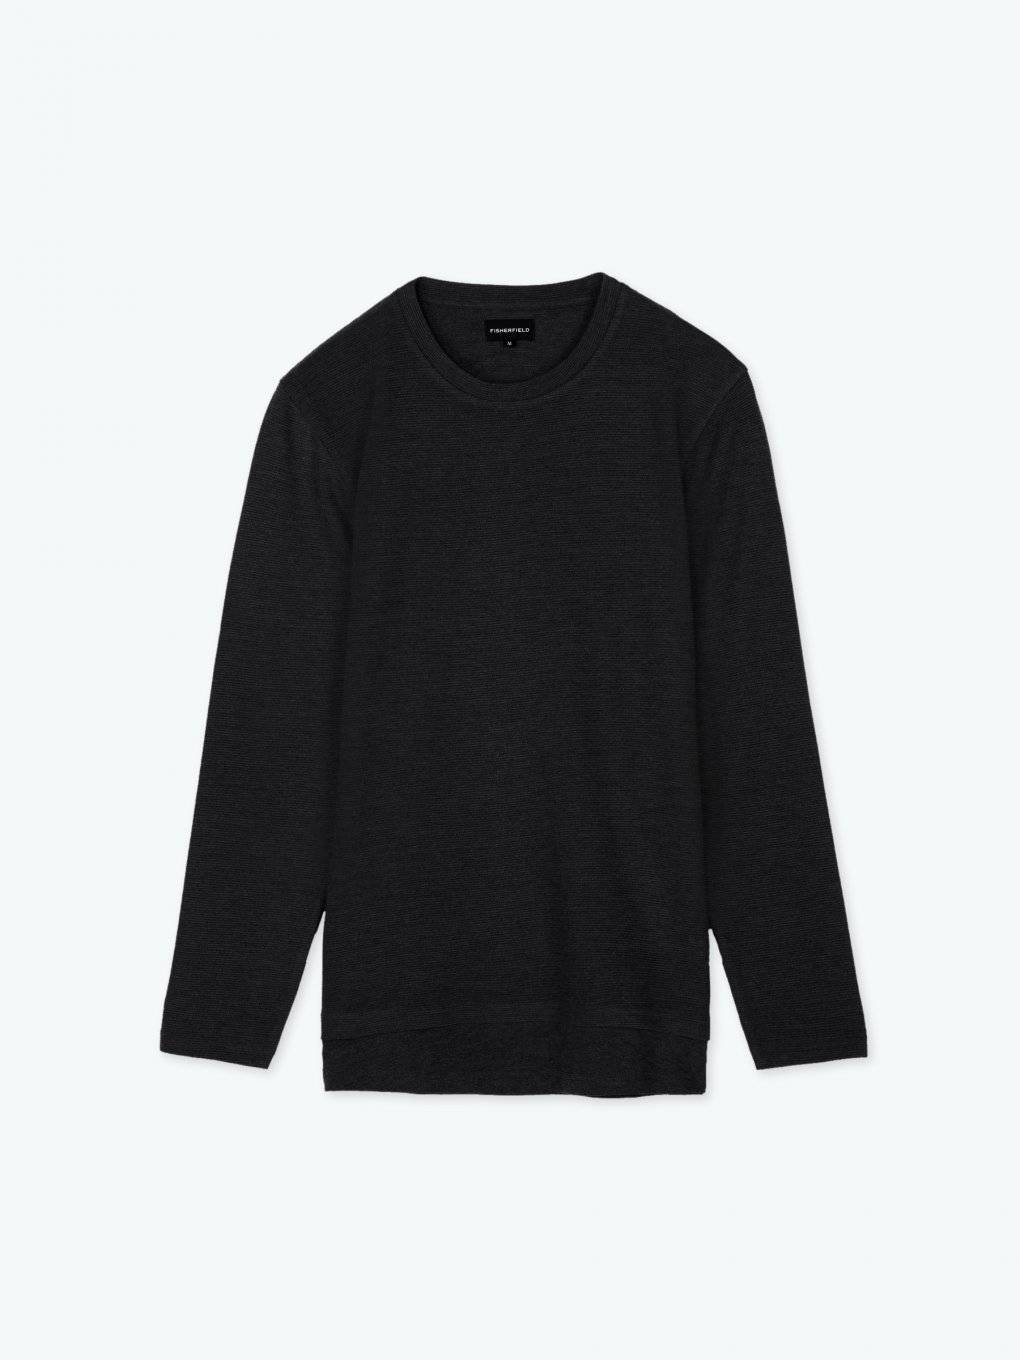 Structured t-shirt long sleeve with laered hem